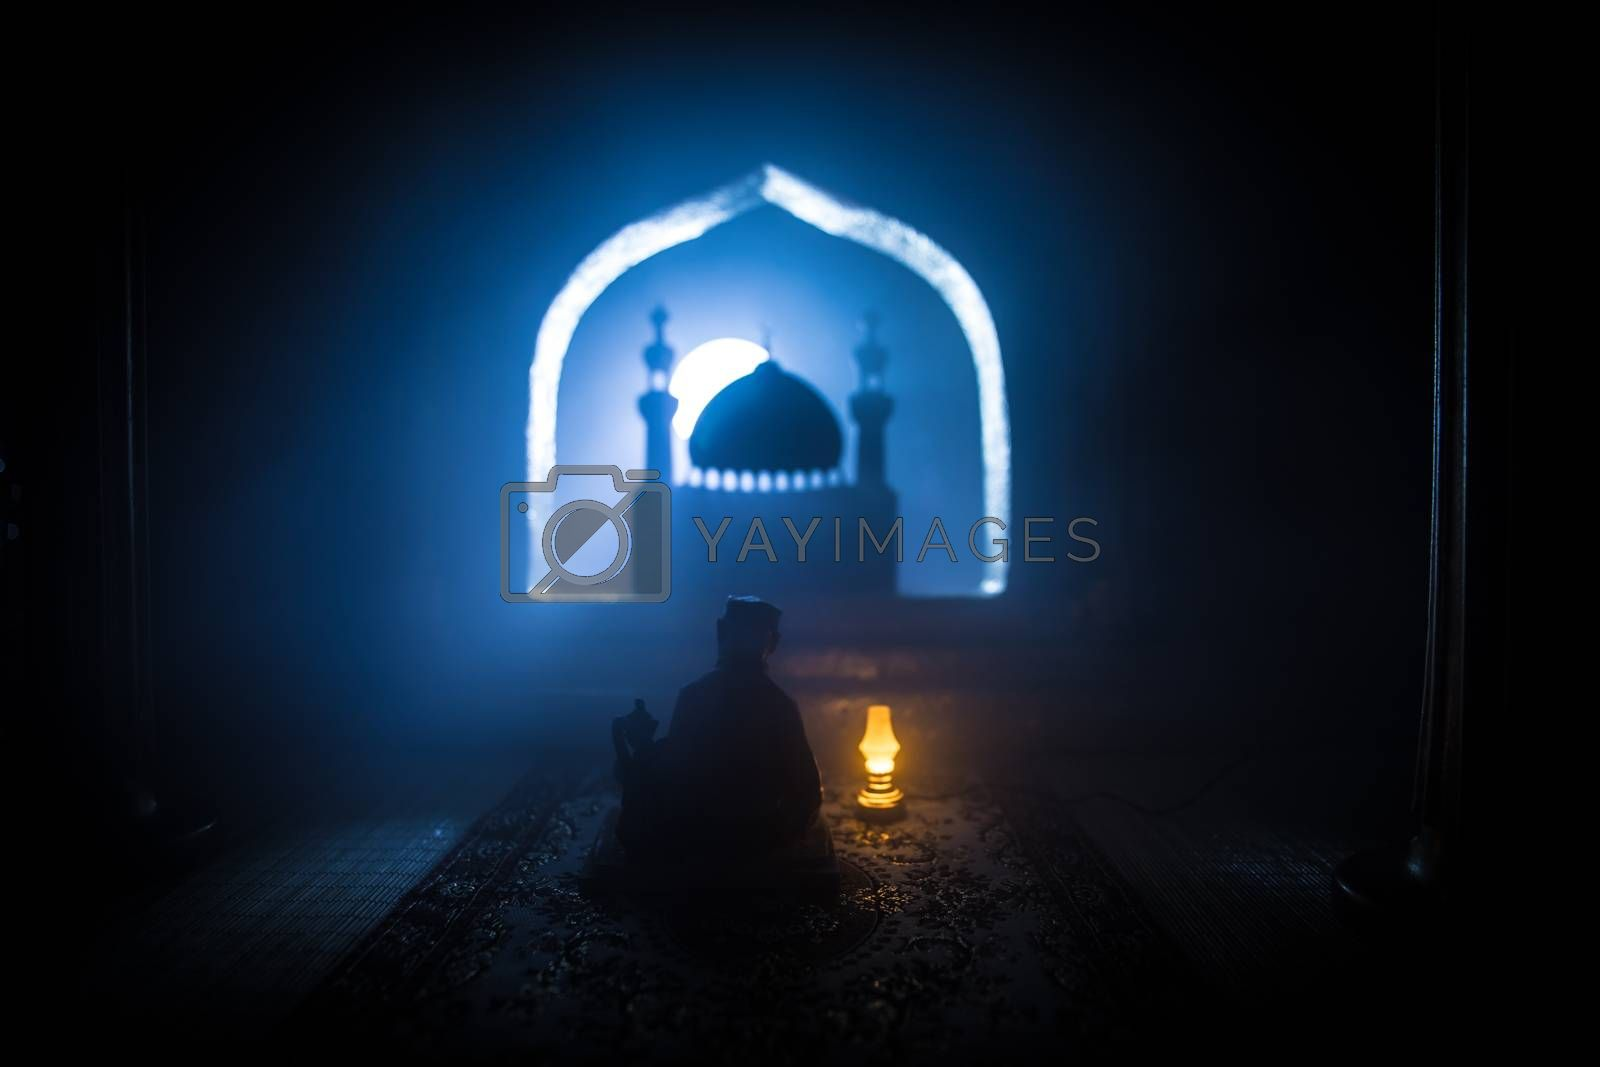 A realistic Arabian interior miniature with window and columns. Meals are served before sunrise called Suhur. Festive greeting card, invitation for Muslim holy month Ramadan Kareem. Selective focus